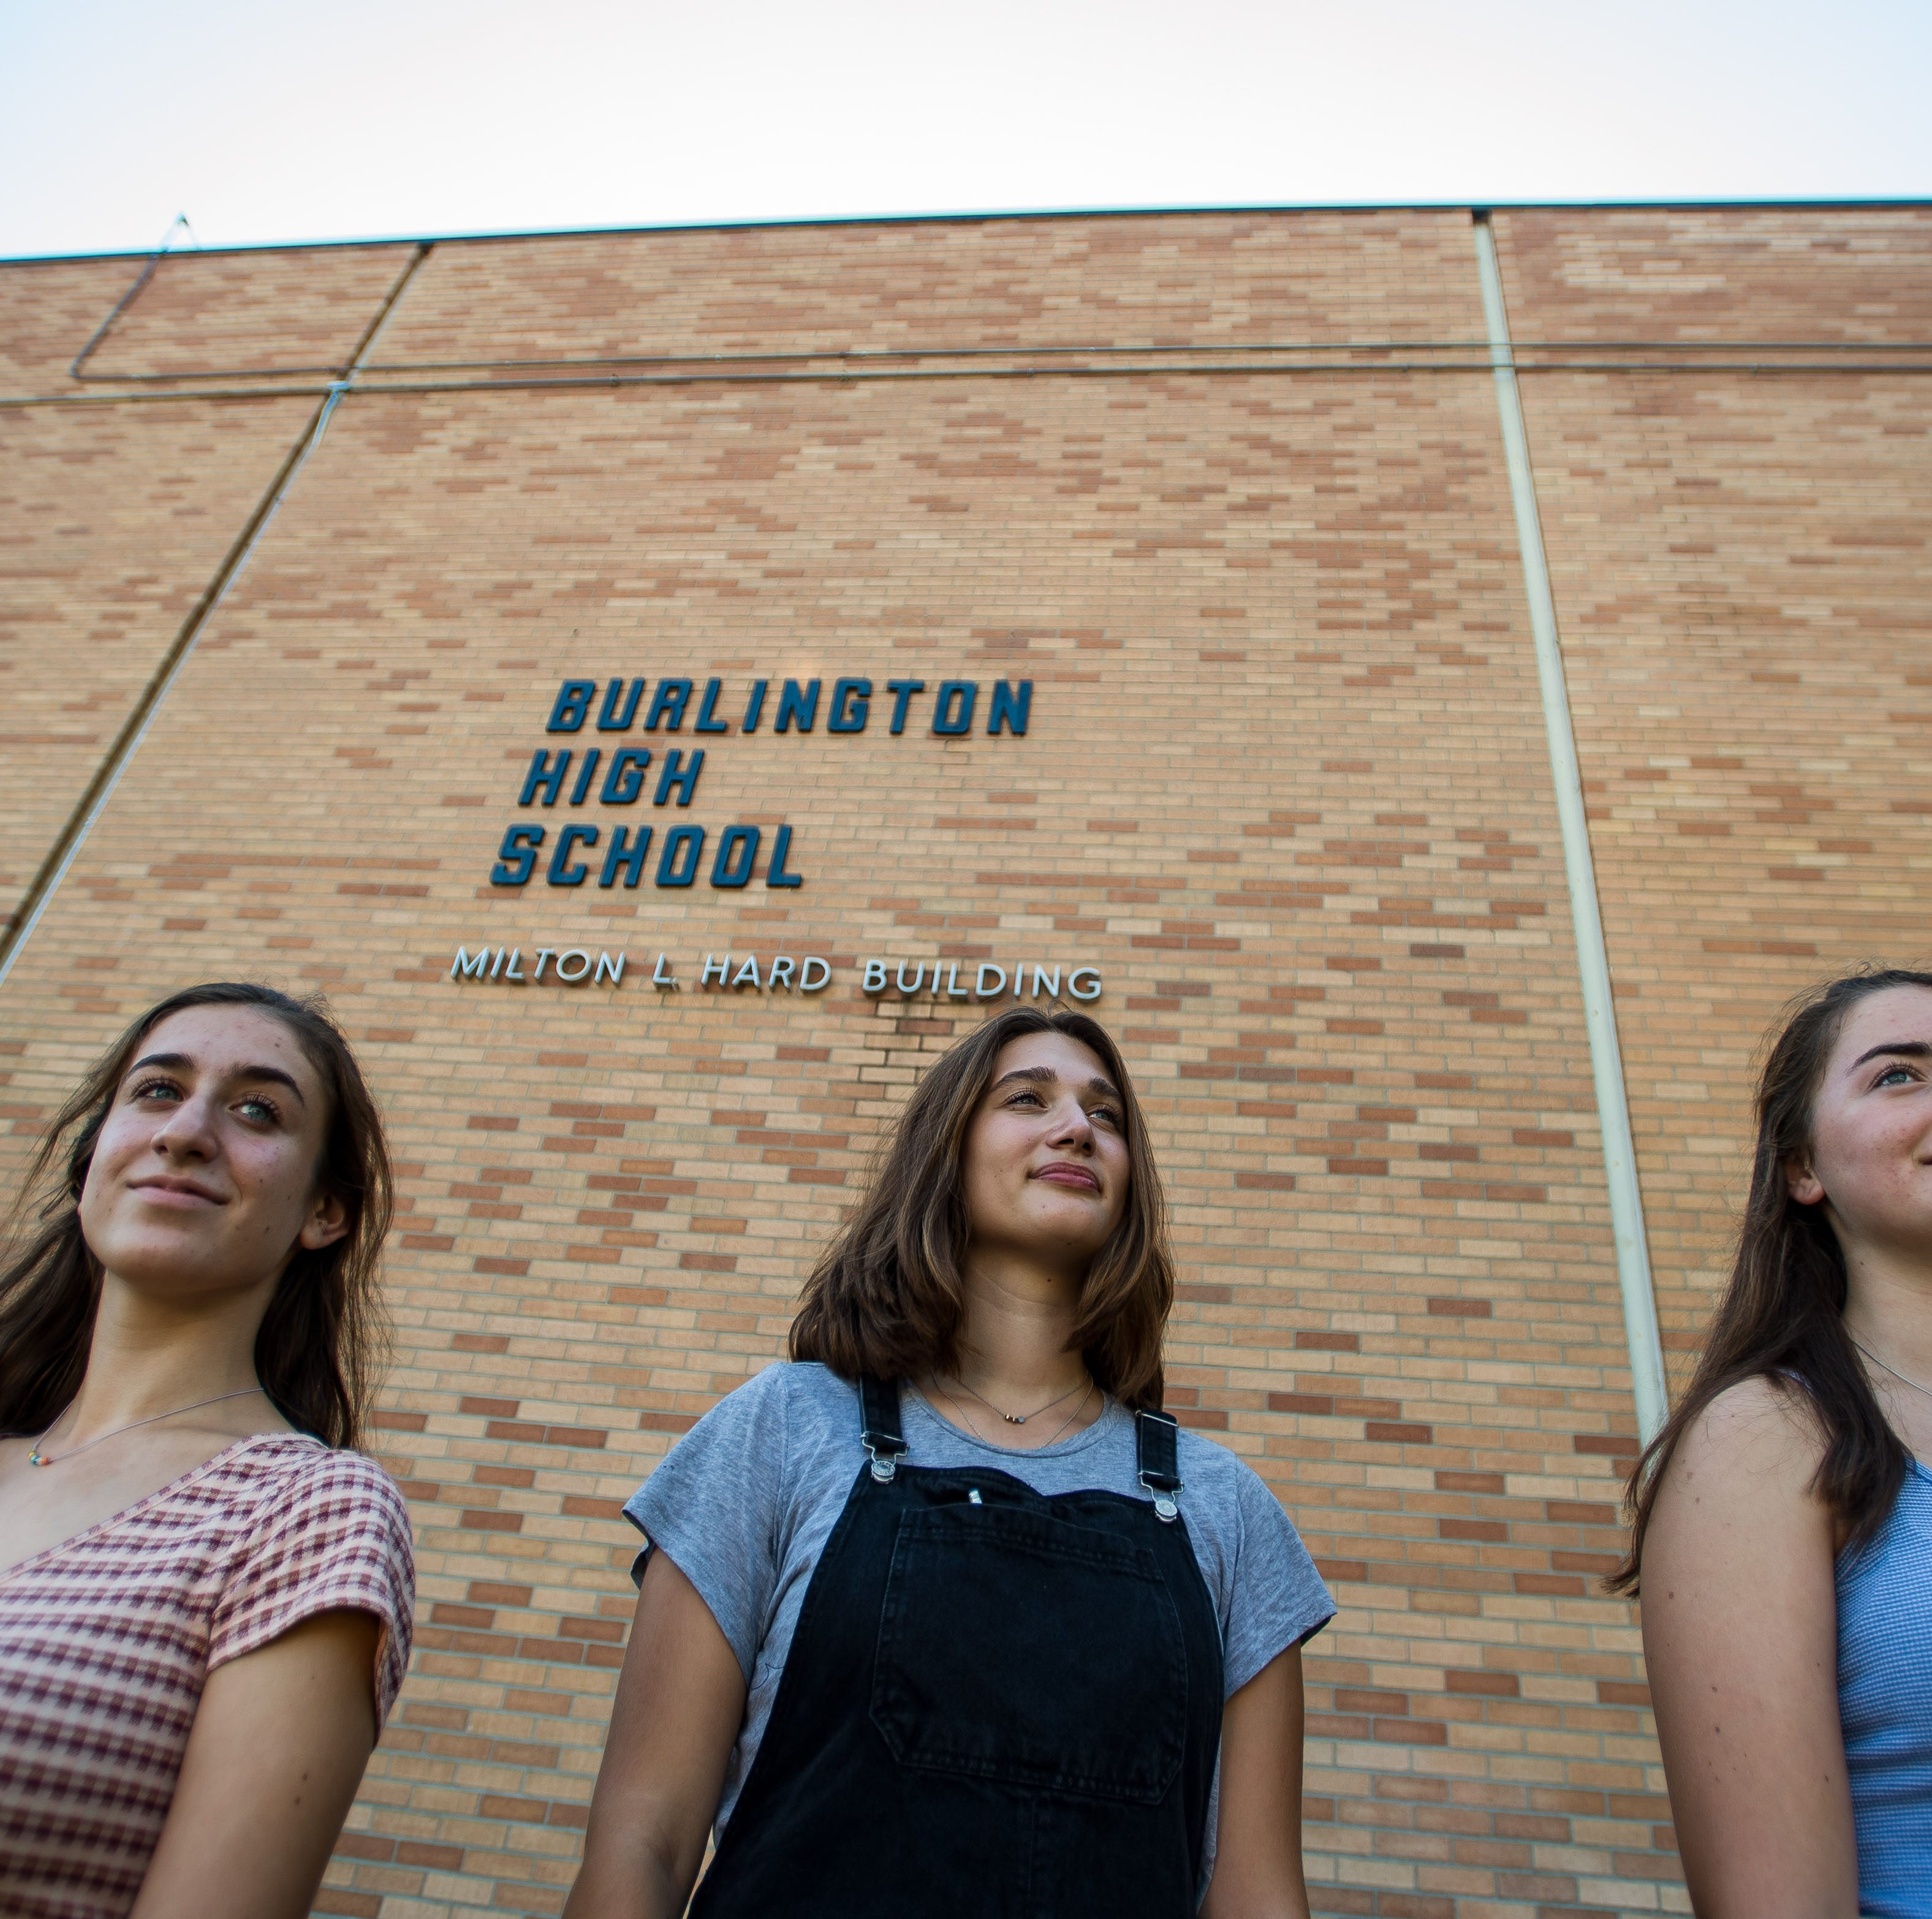 Student newspaper censorship: Burlington High School editors win First Amendment battle